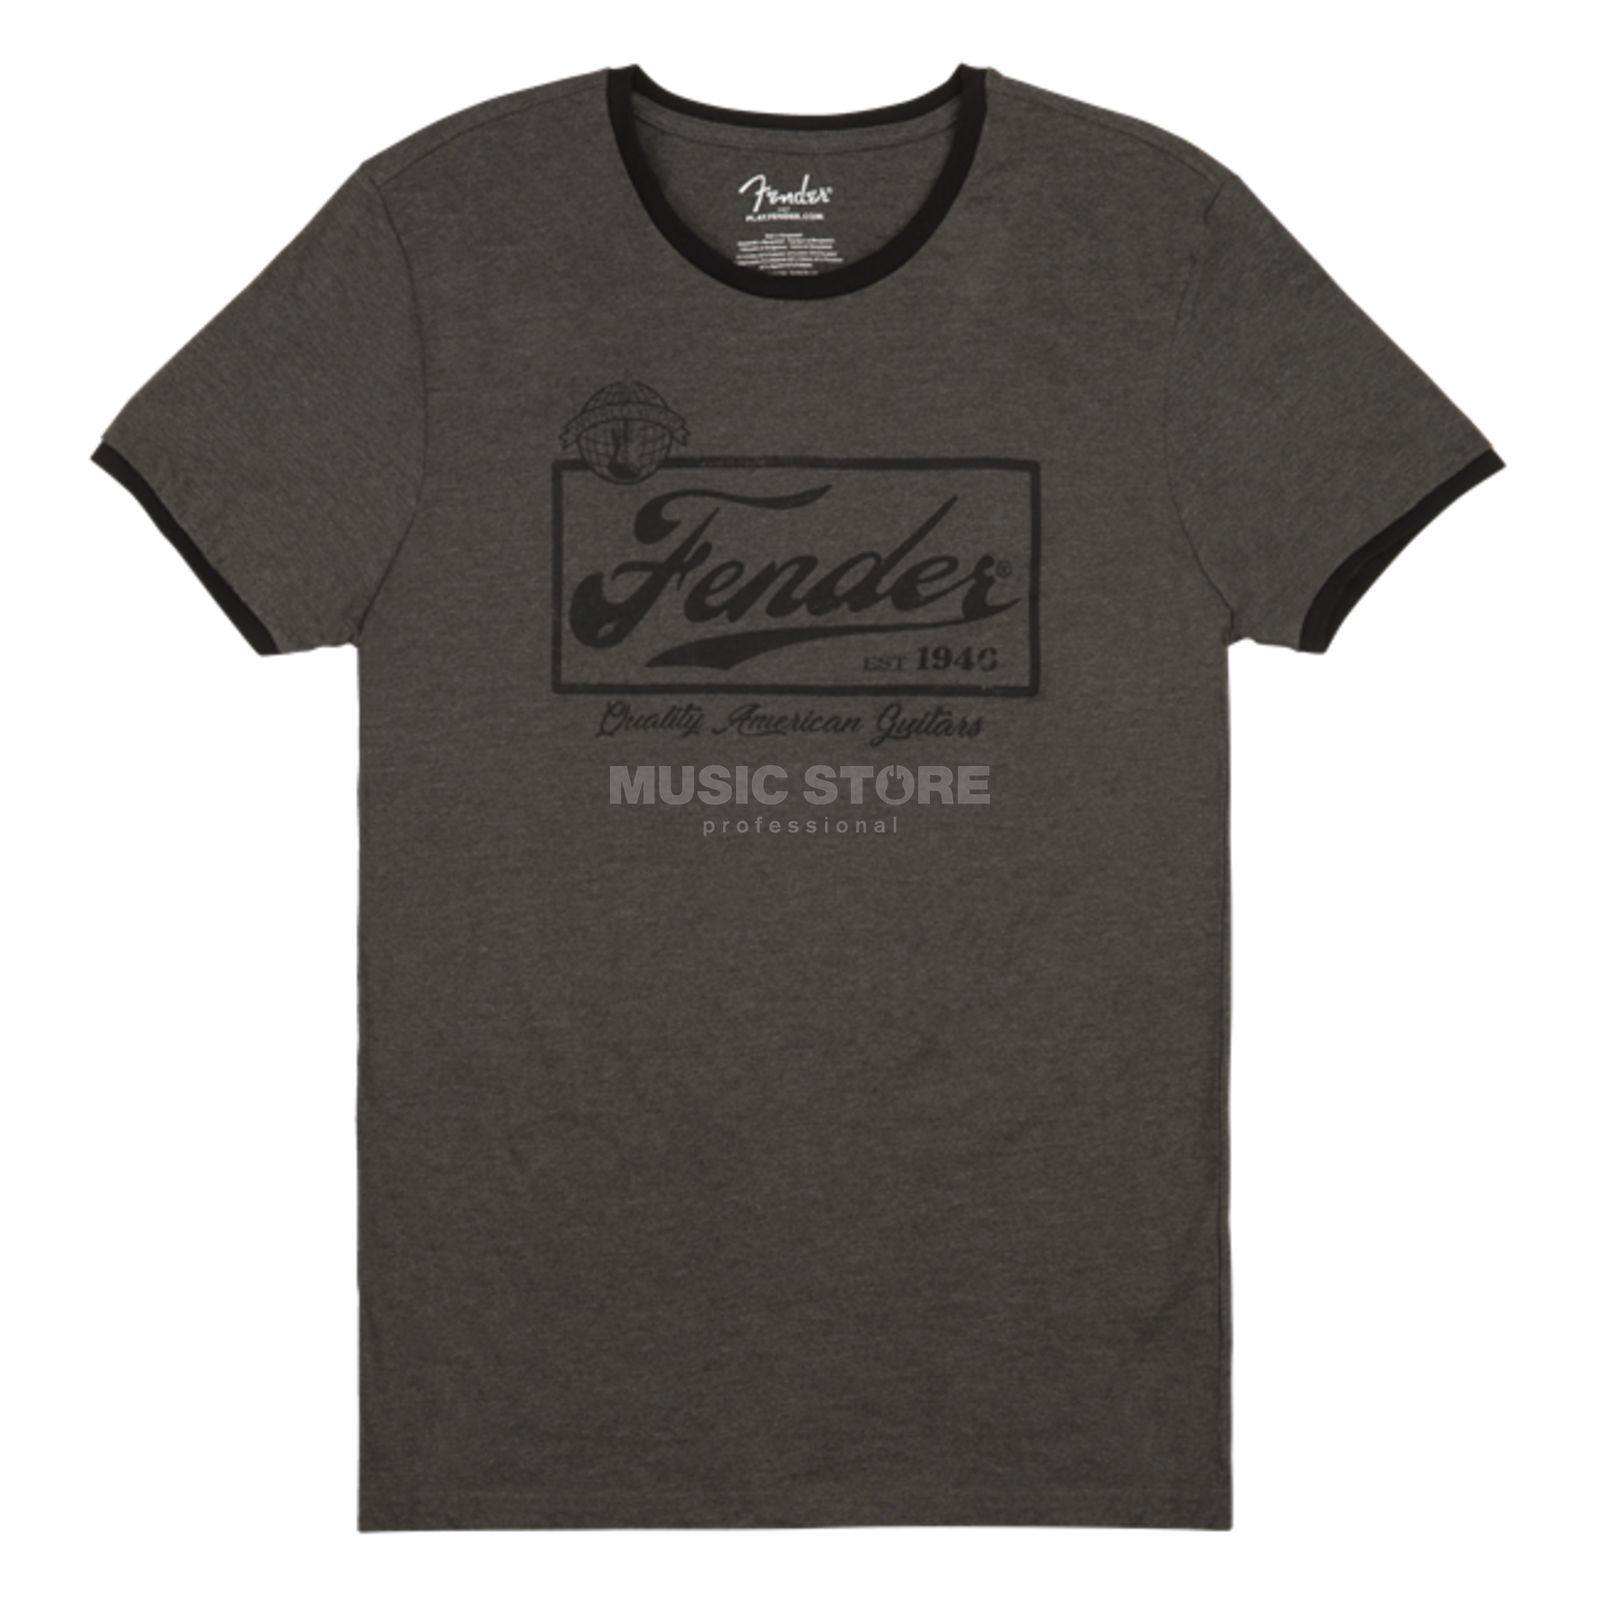 Fender Beer Label T-Shirt XXL Product Image